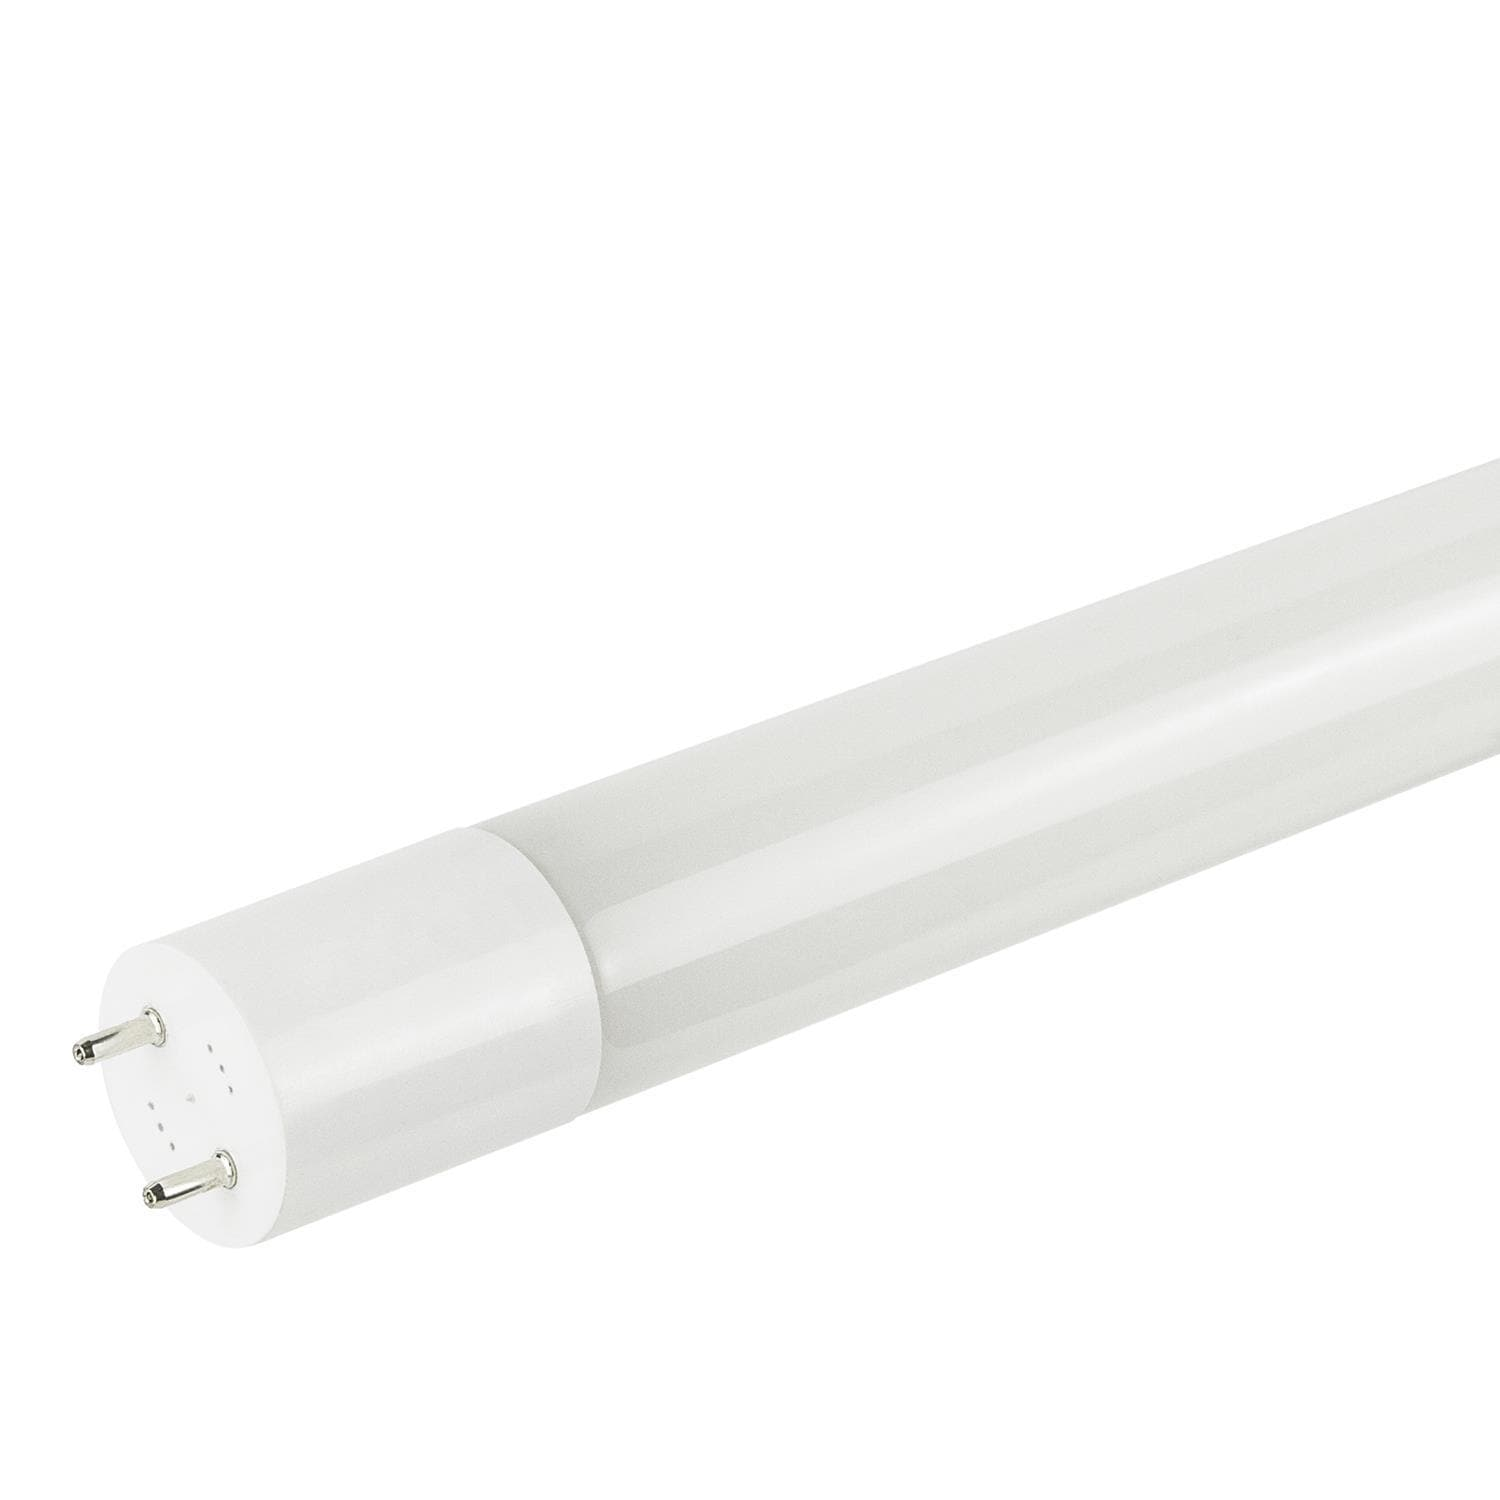 SUNLITE 88406-SU 11.5w T8 LED Tube 5000K Super White Light